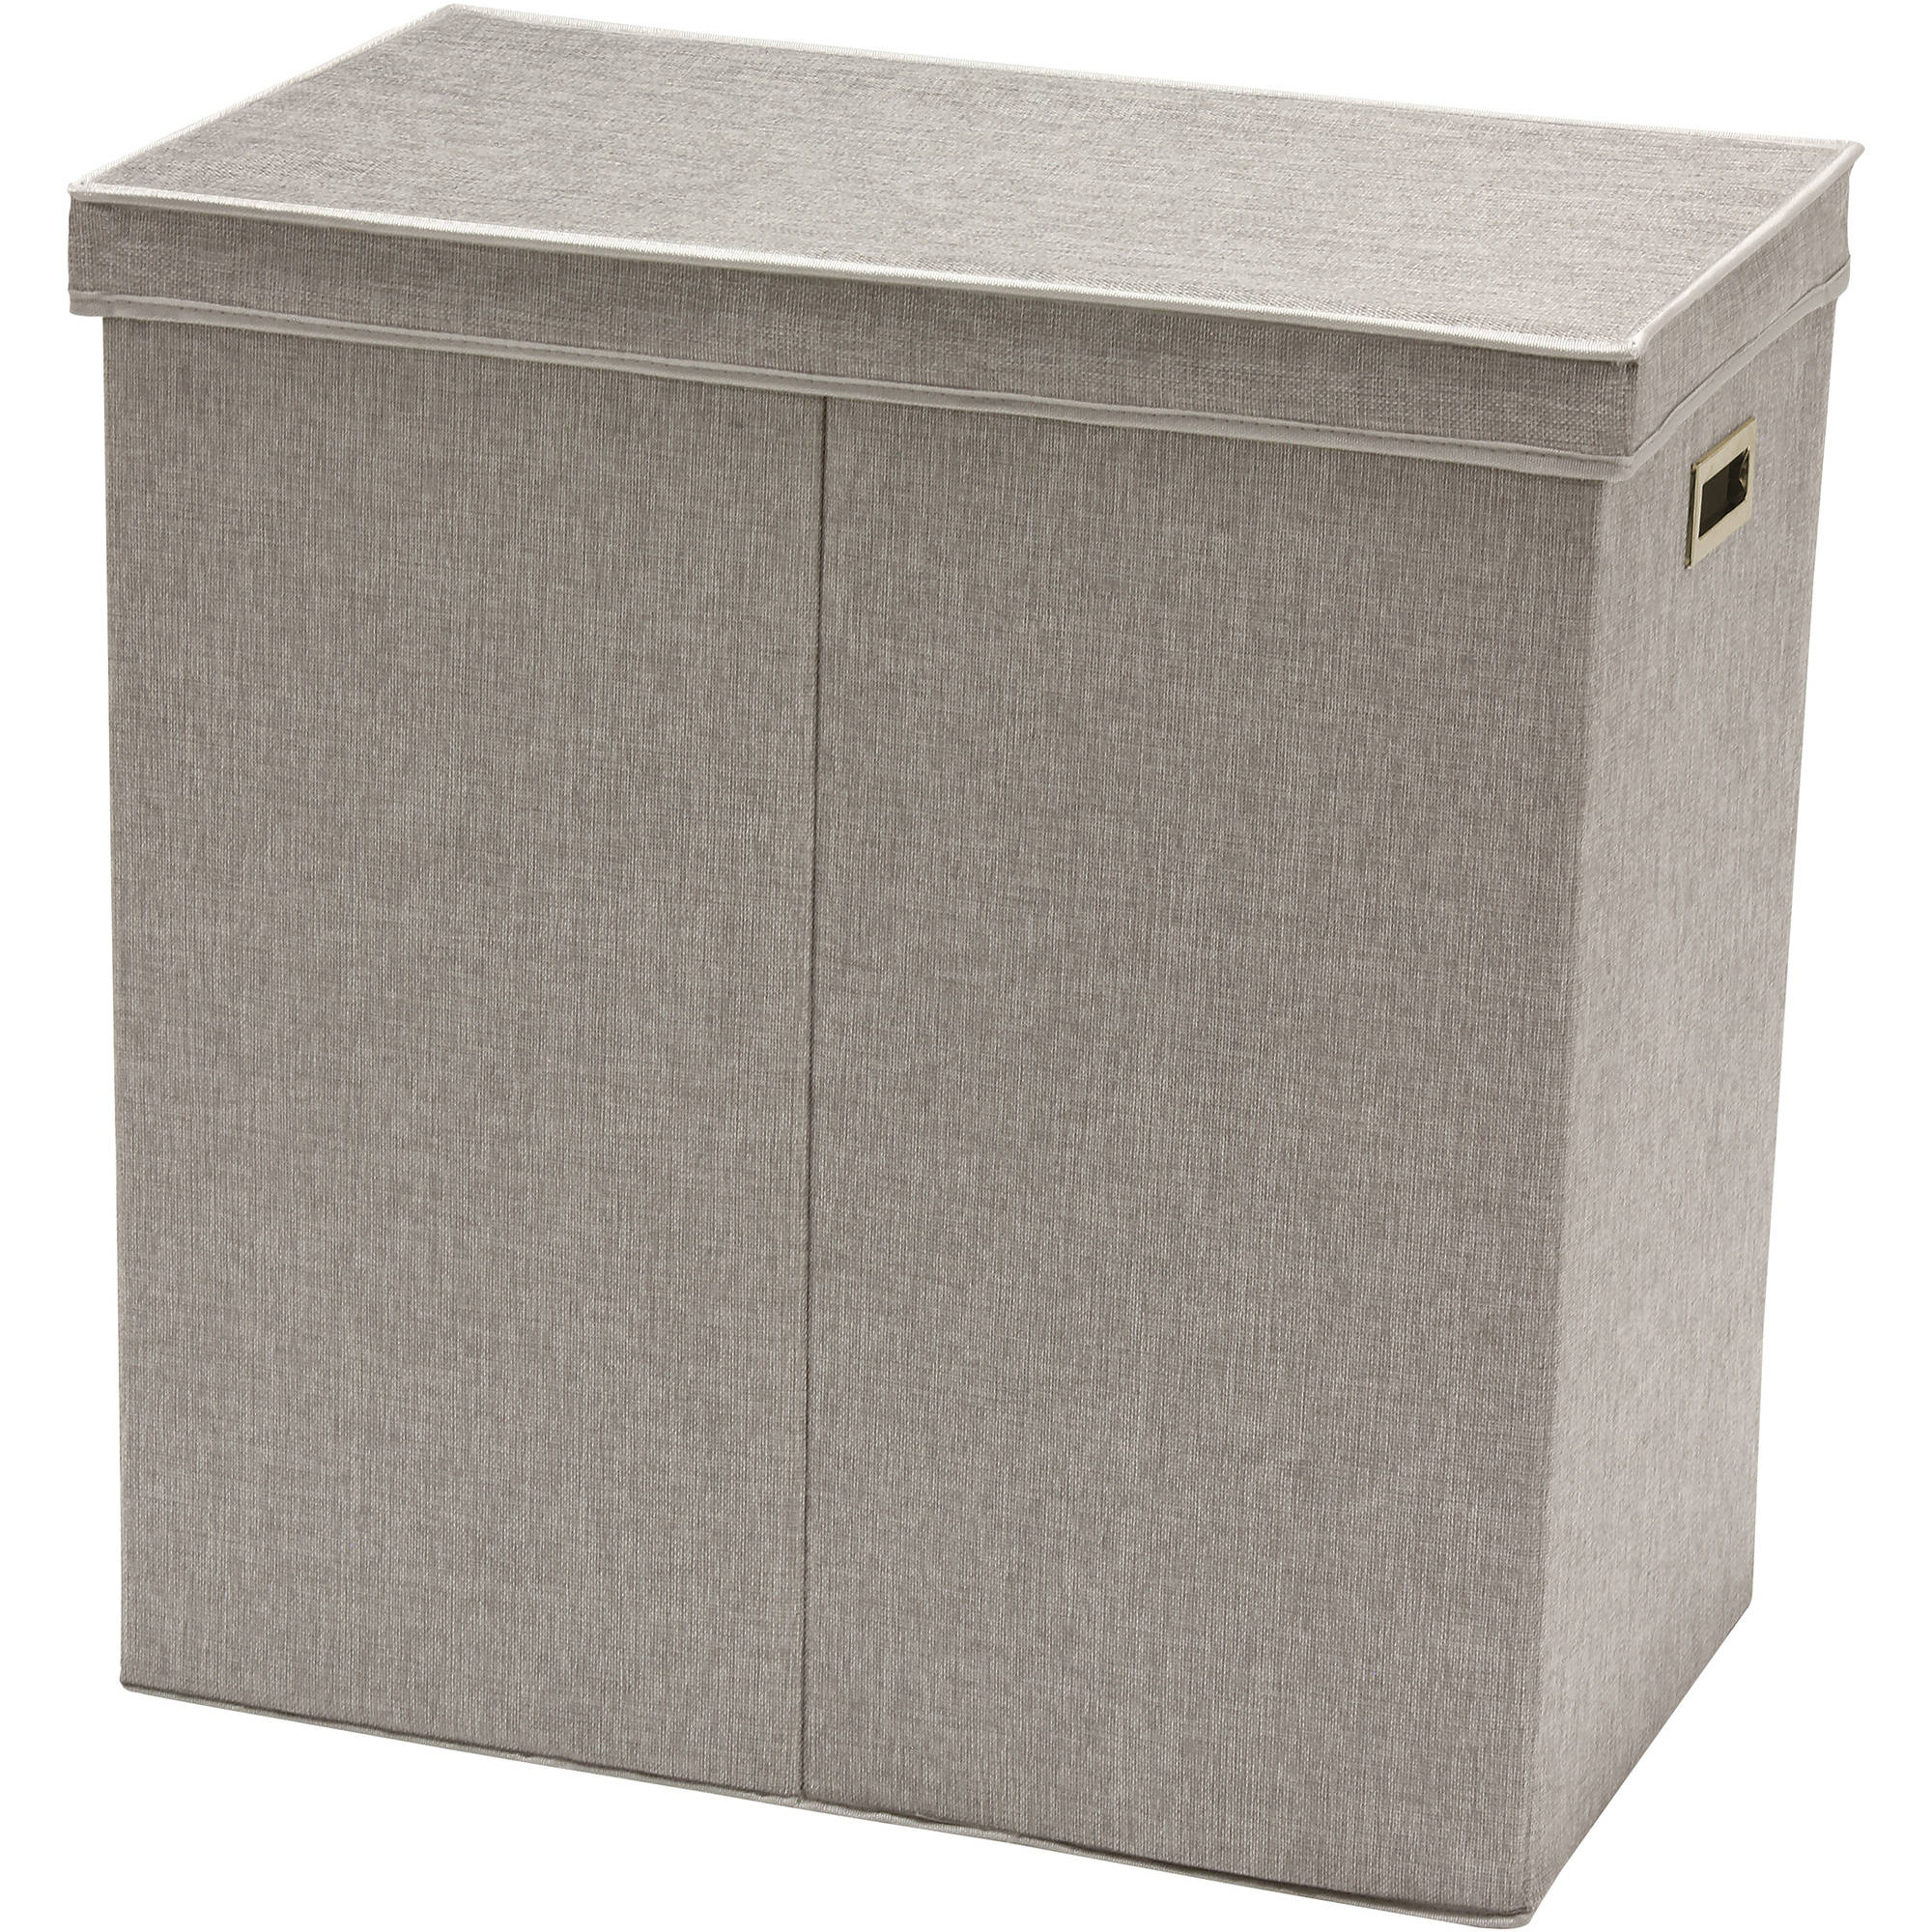 Greenway GFL6000GR Collapsible Double Sorter Laundry Hamper, Grey Linen